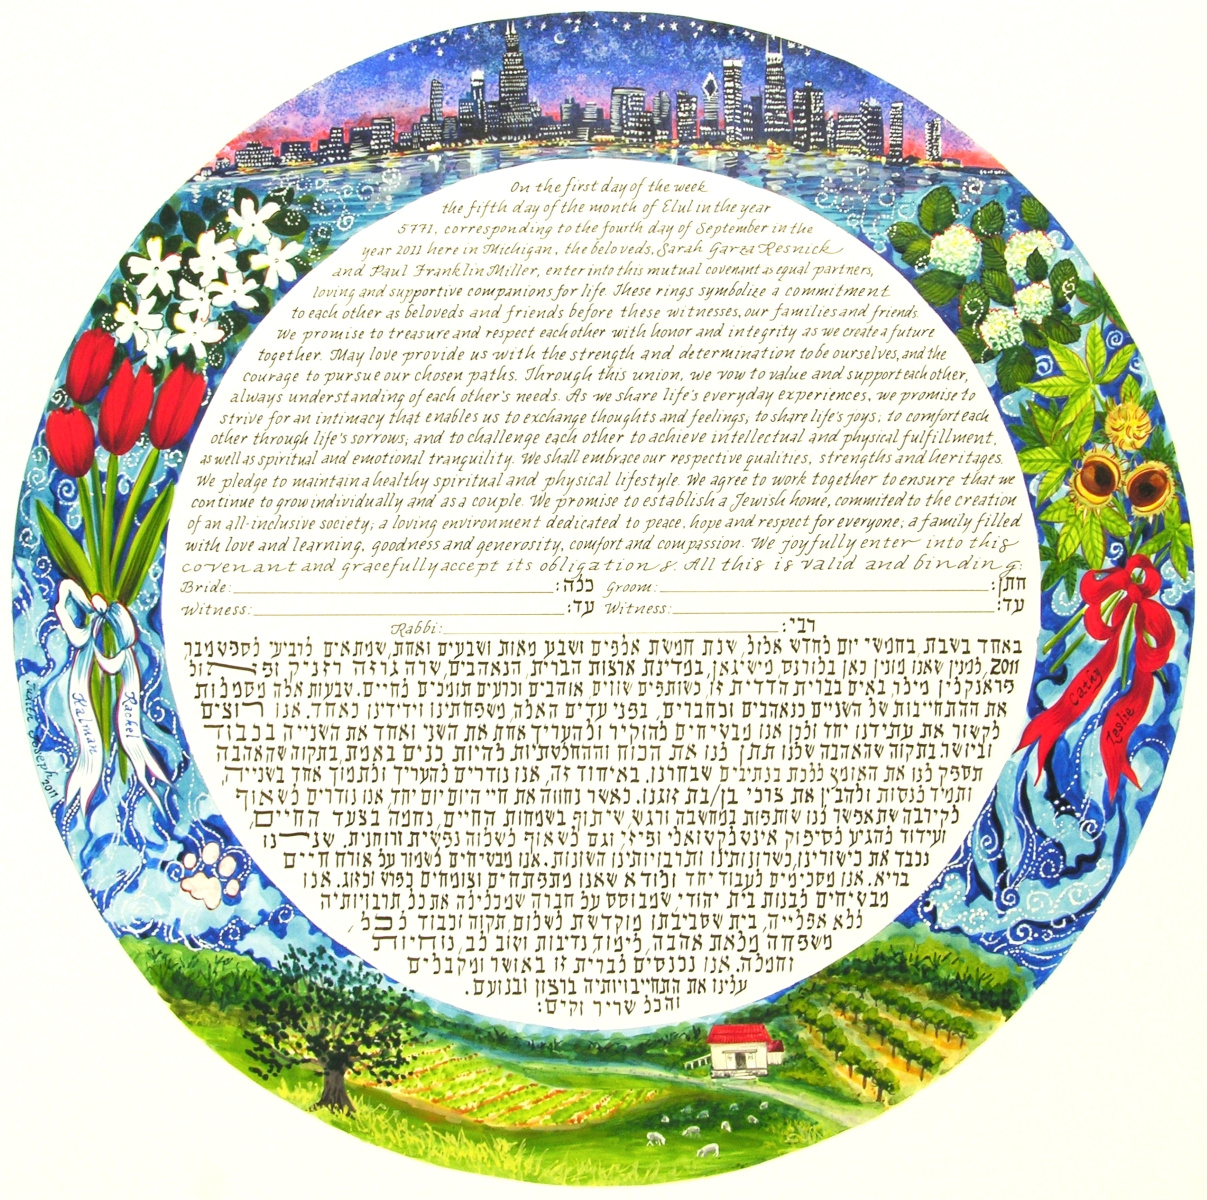 Chicago/Ohio Ketubah, Lawrence, Michigan, 2011